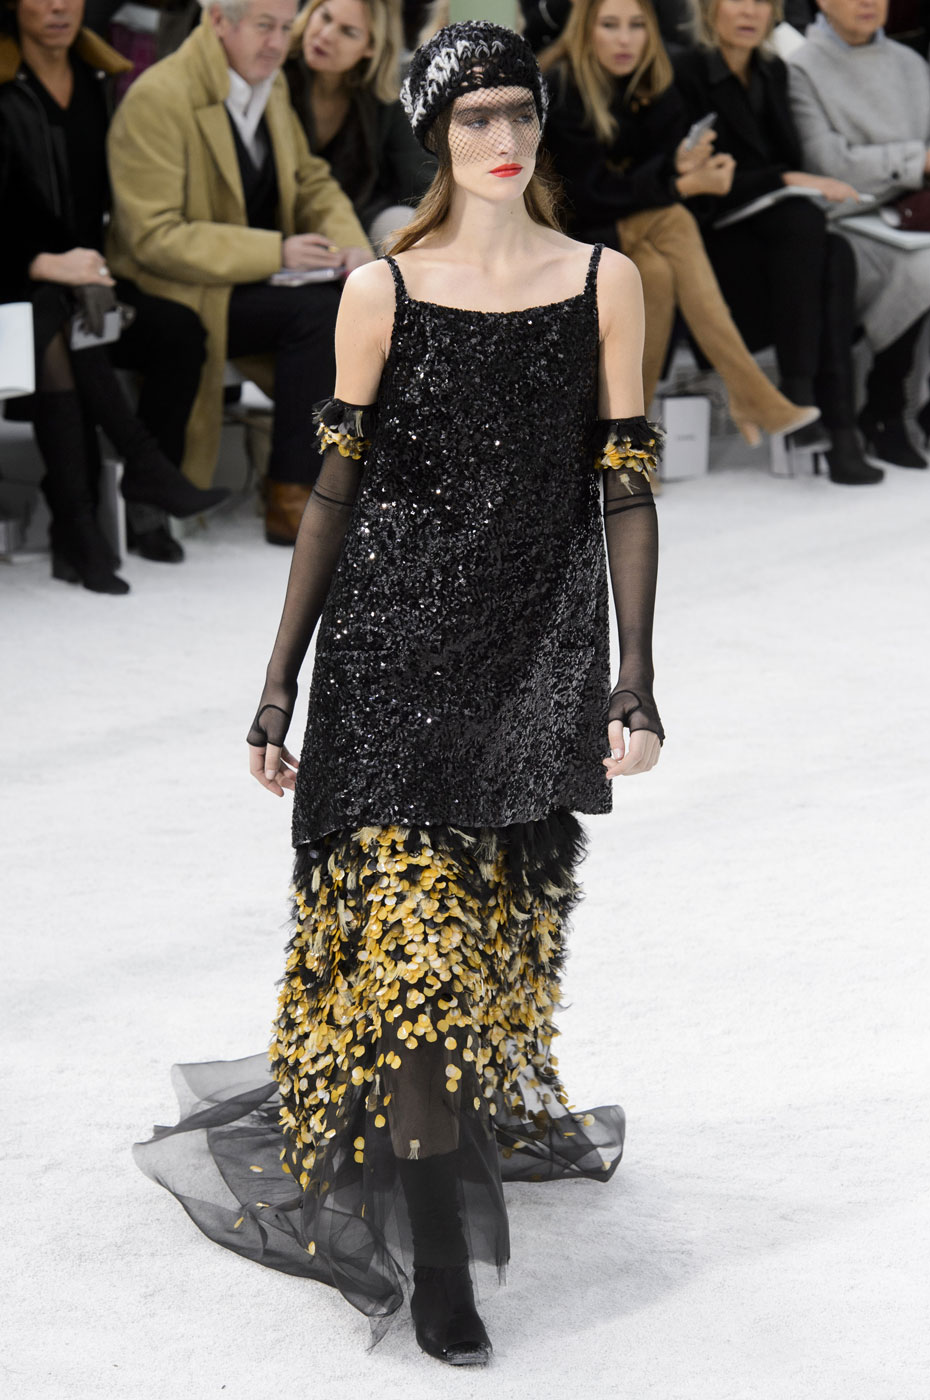 Chanel-fashion-runway-show-haute-couture-paris-spring-summer-2015-the-impression-111